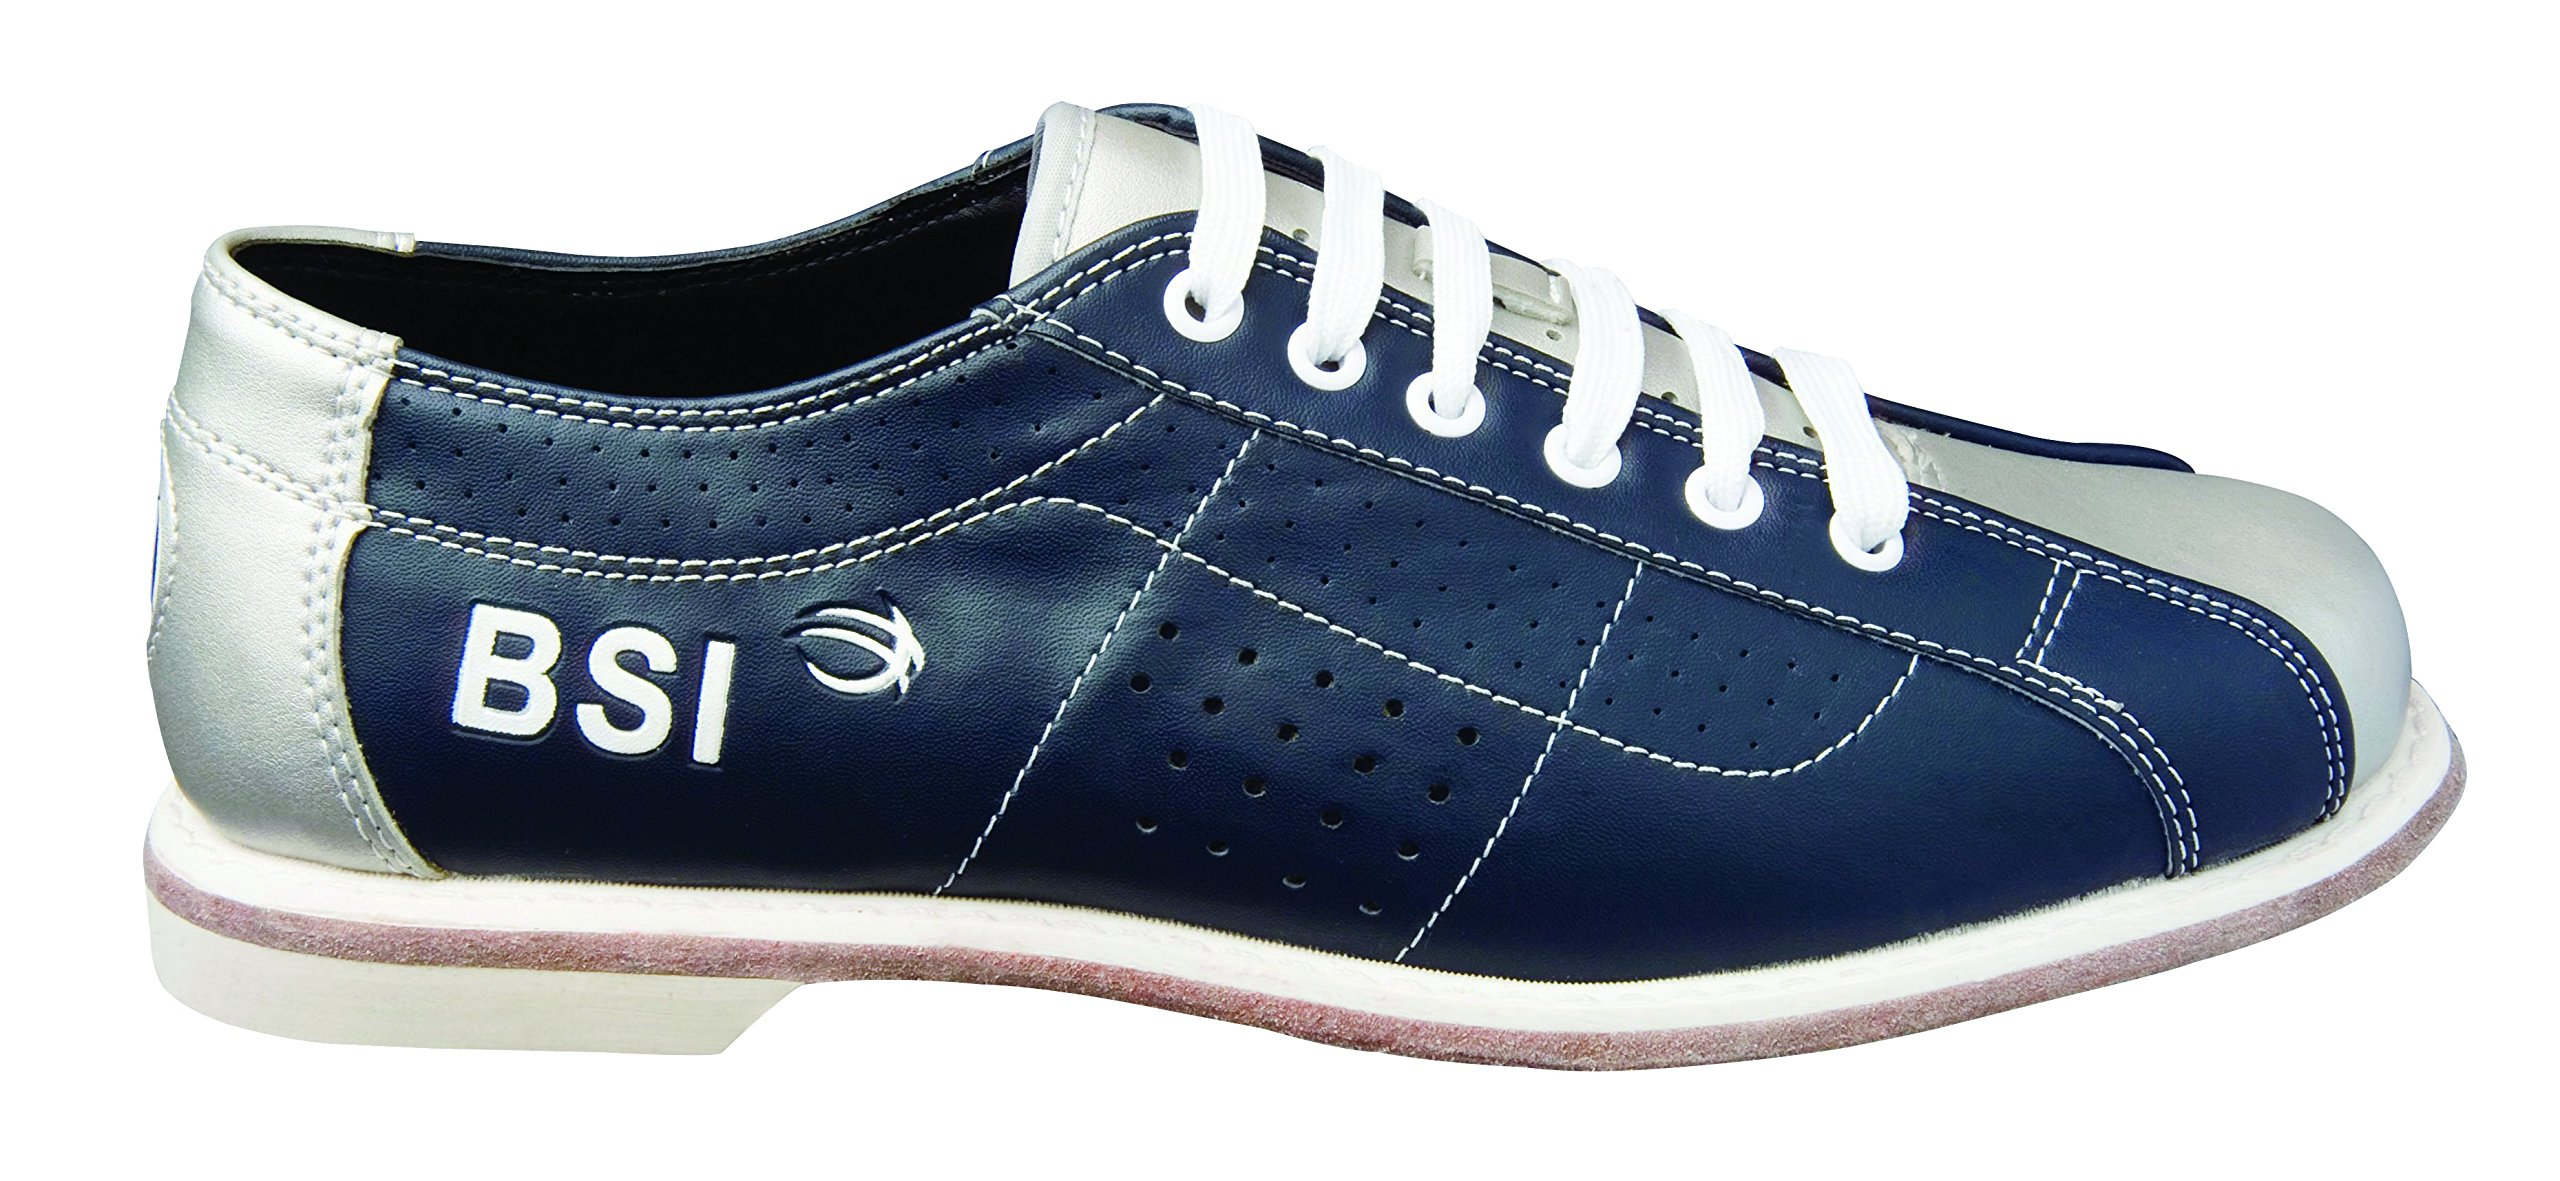 BSI Dual Size Rental Shoes, Blue/Silver, 10.5